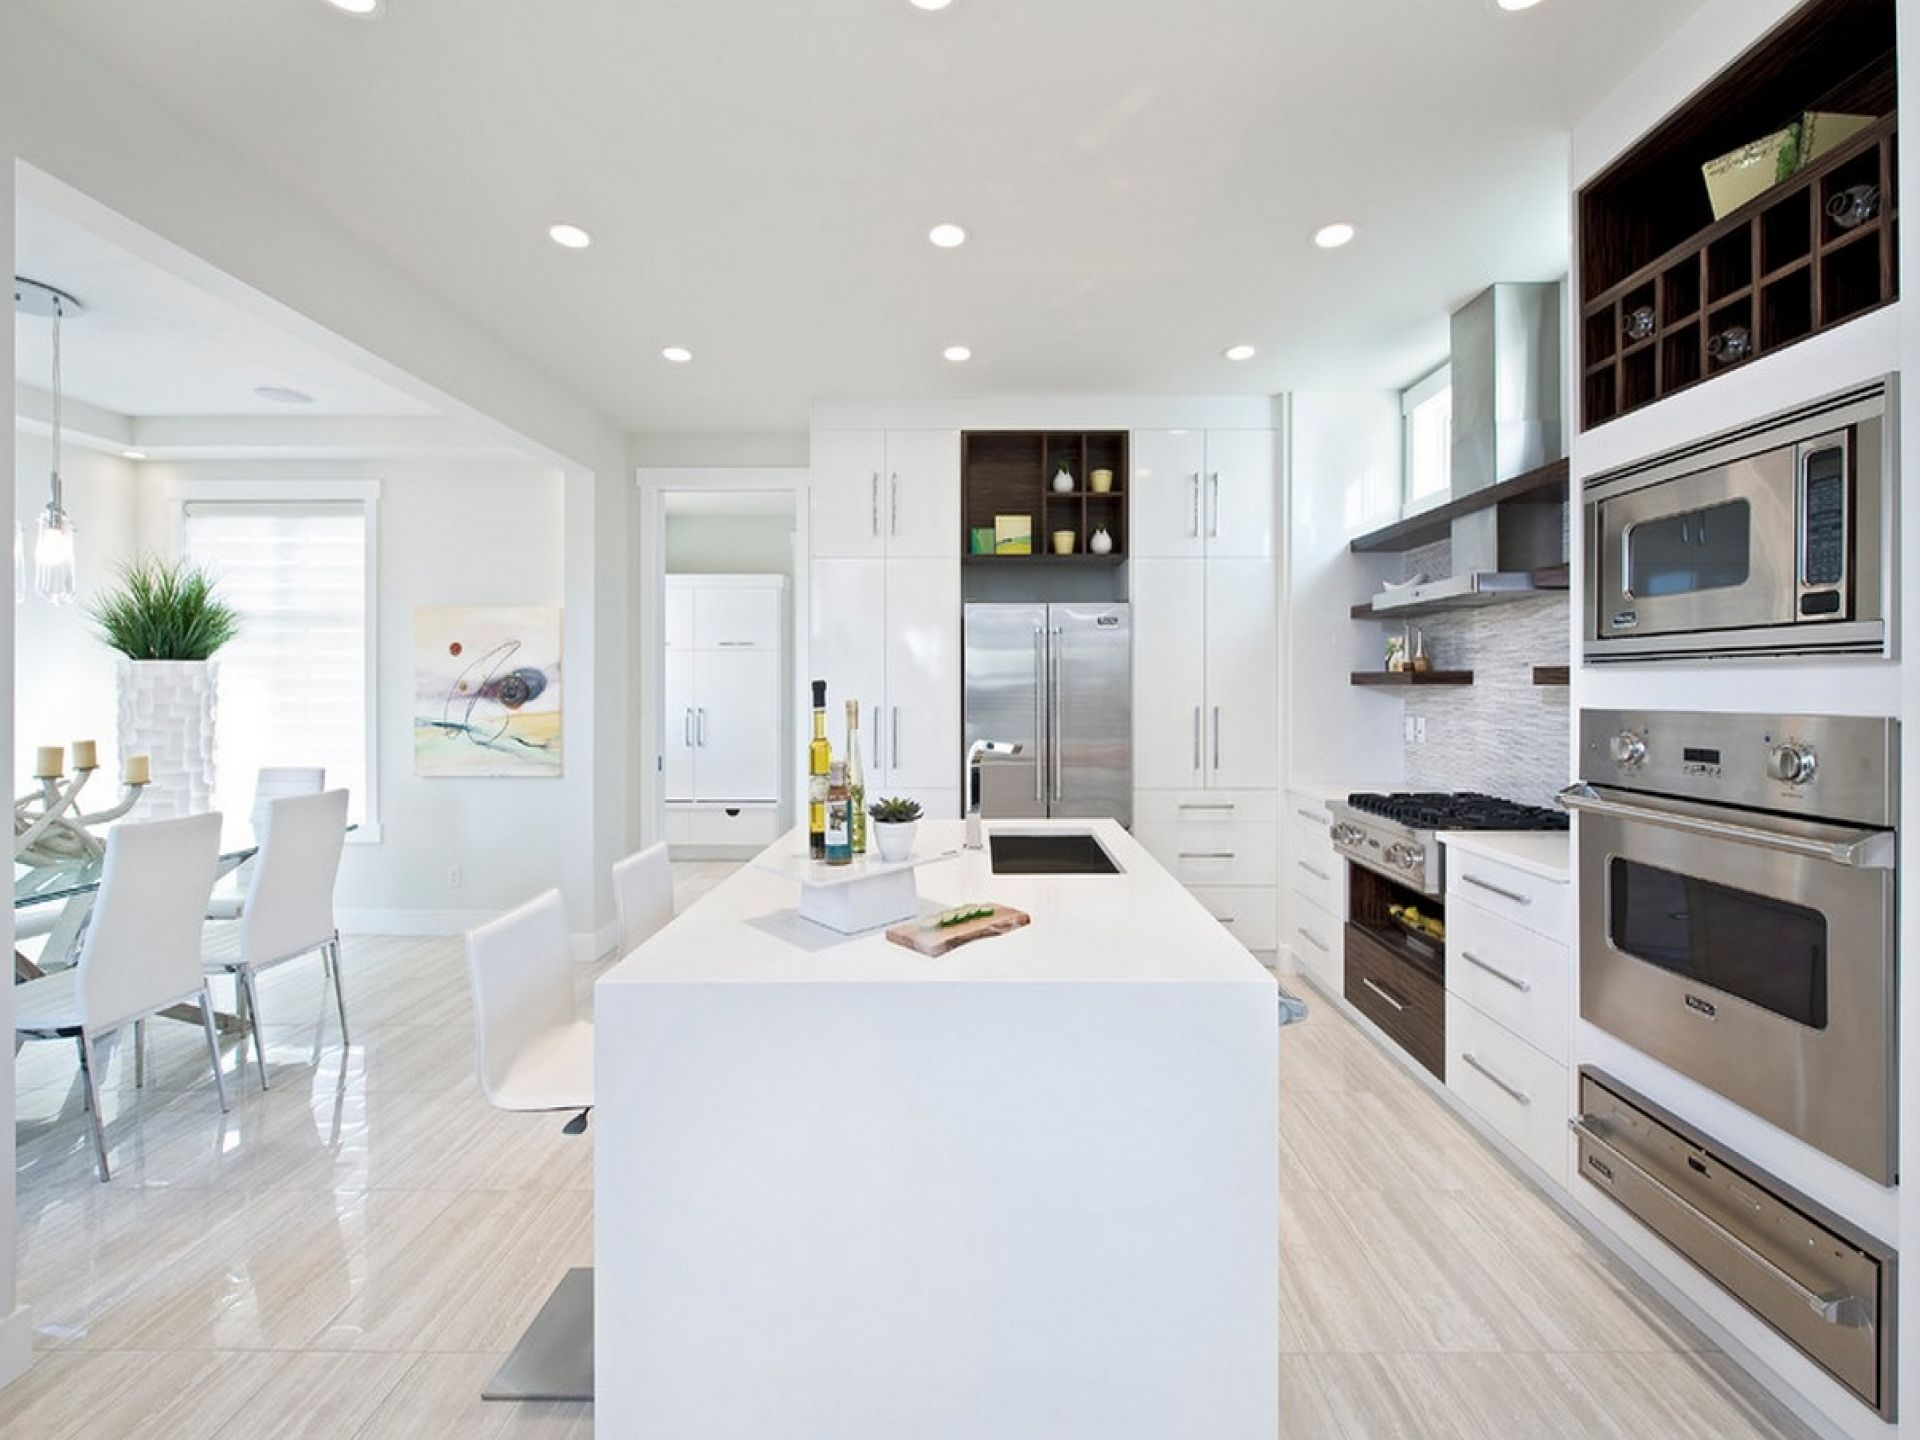 1920x1440-19-ideal-modern-kitchens-2013-the-home-sitter.jpg (1920×1440)